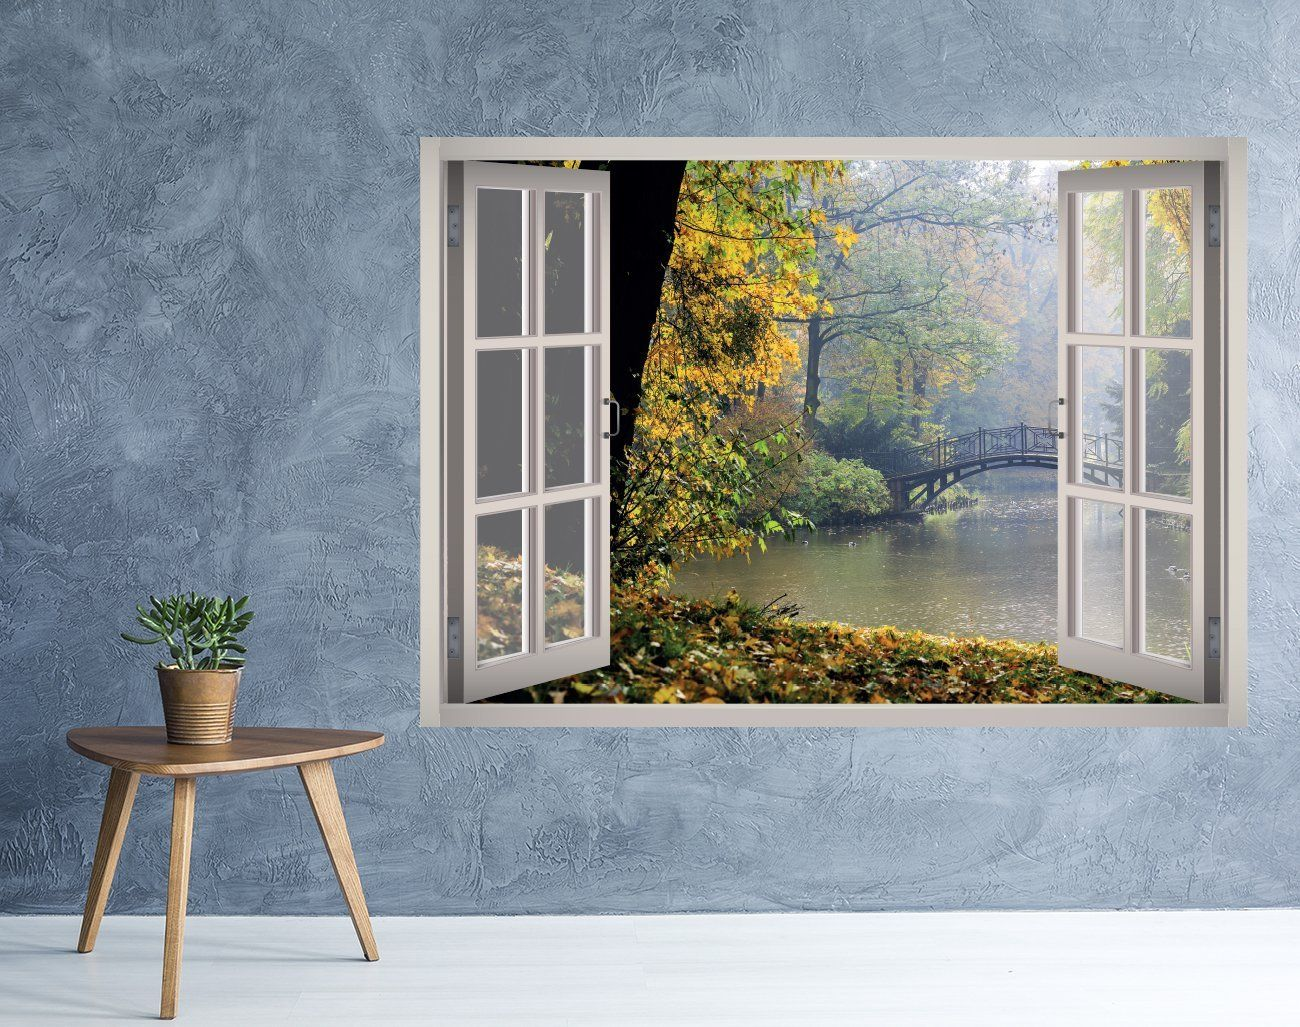 Rainy Nature Lake Window 3d Wall Decal Art 3d Wall Decals Decal